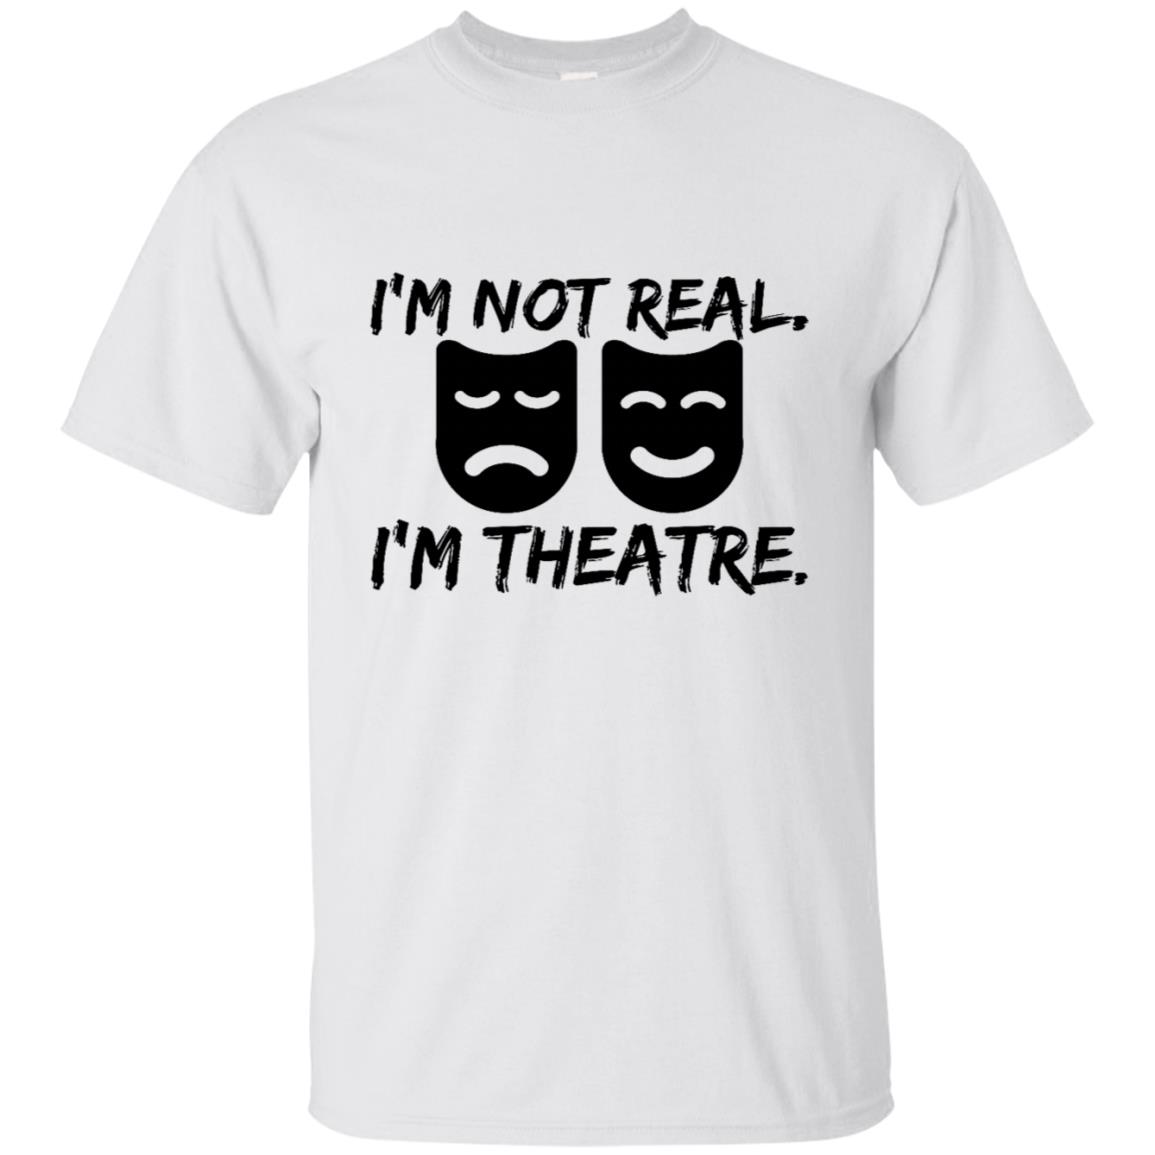 Funny Theatre Masks for Actor Producer Director Unisex Short Sleeve